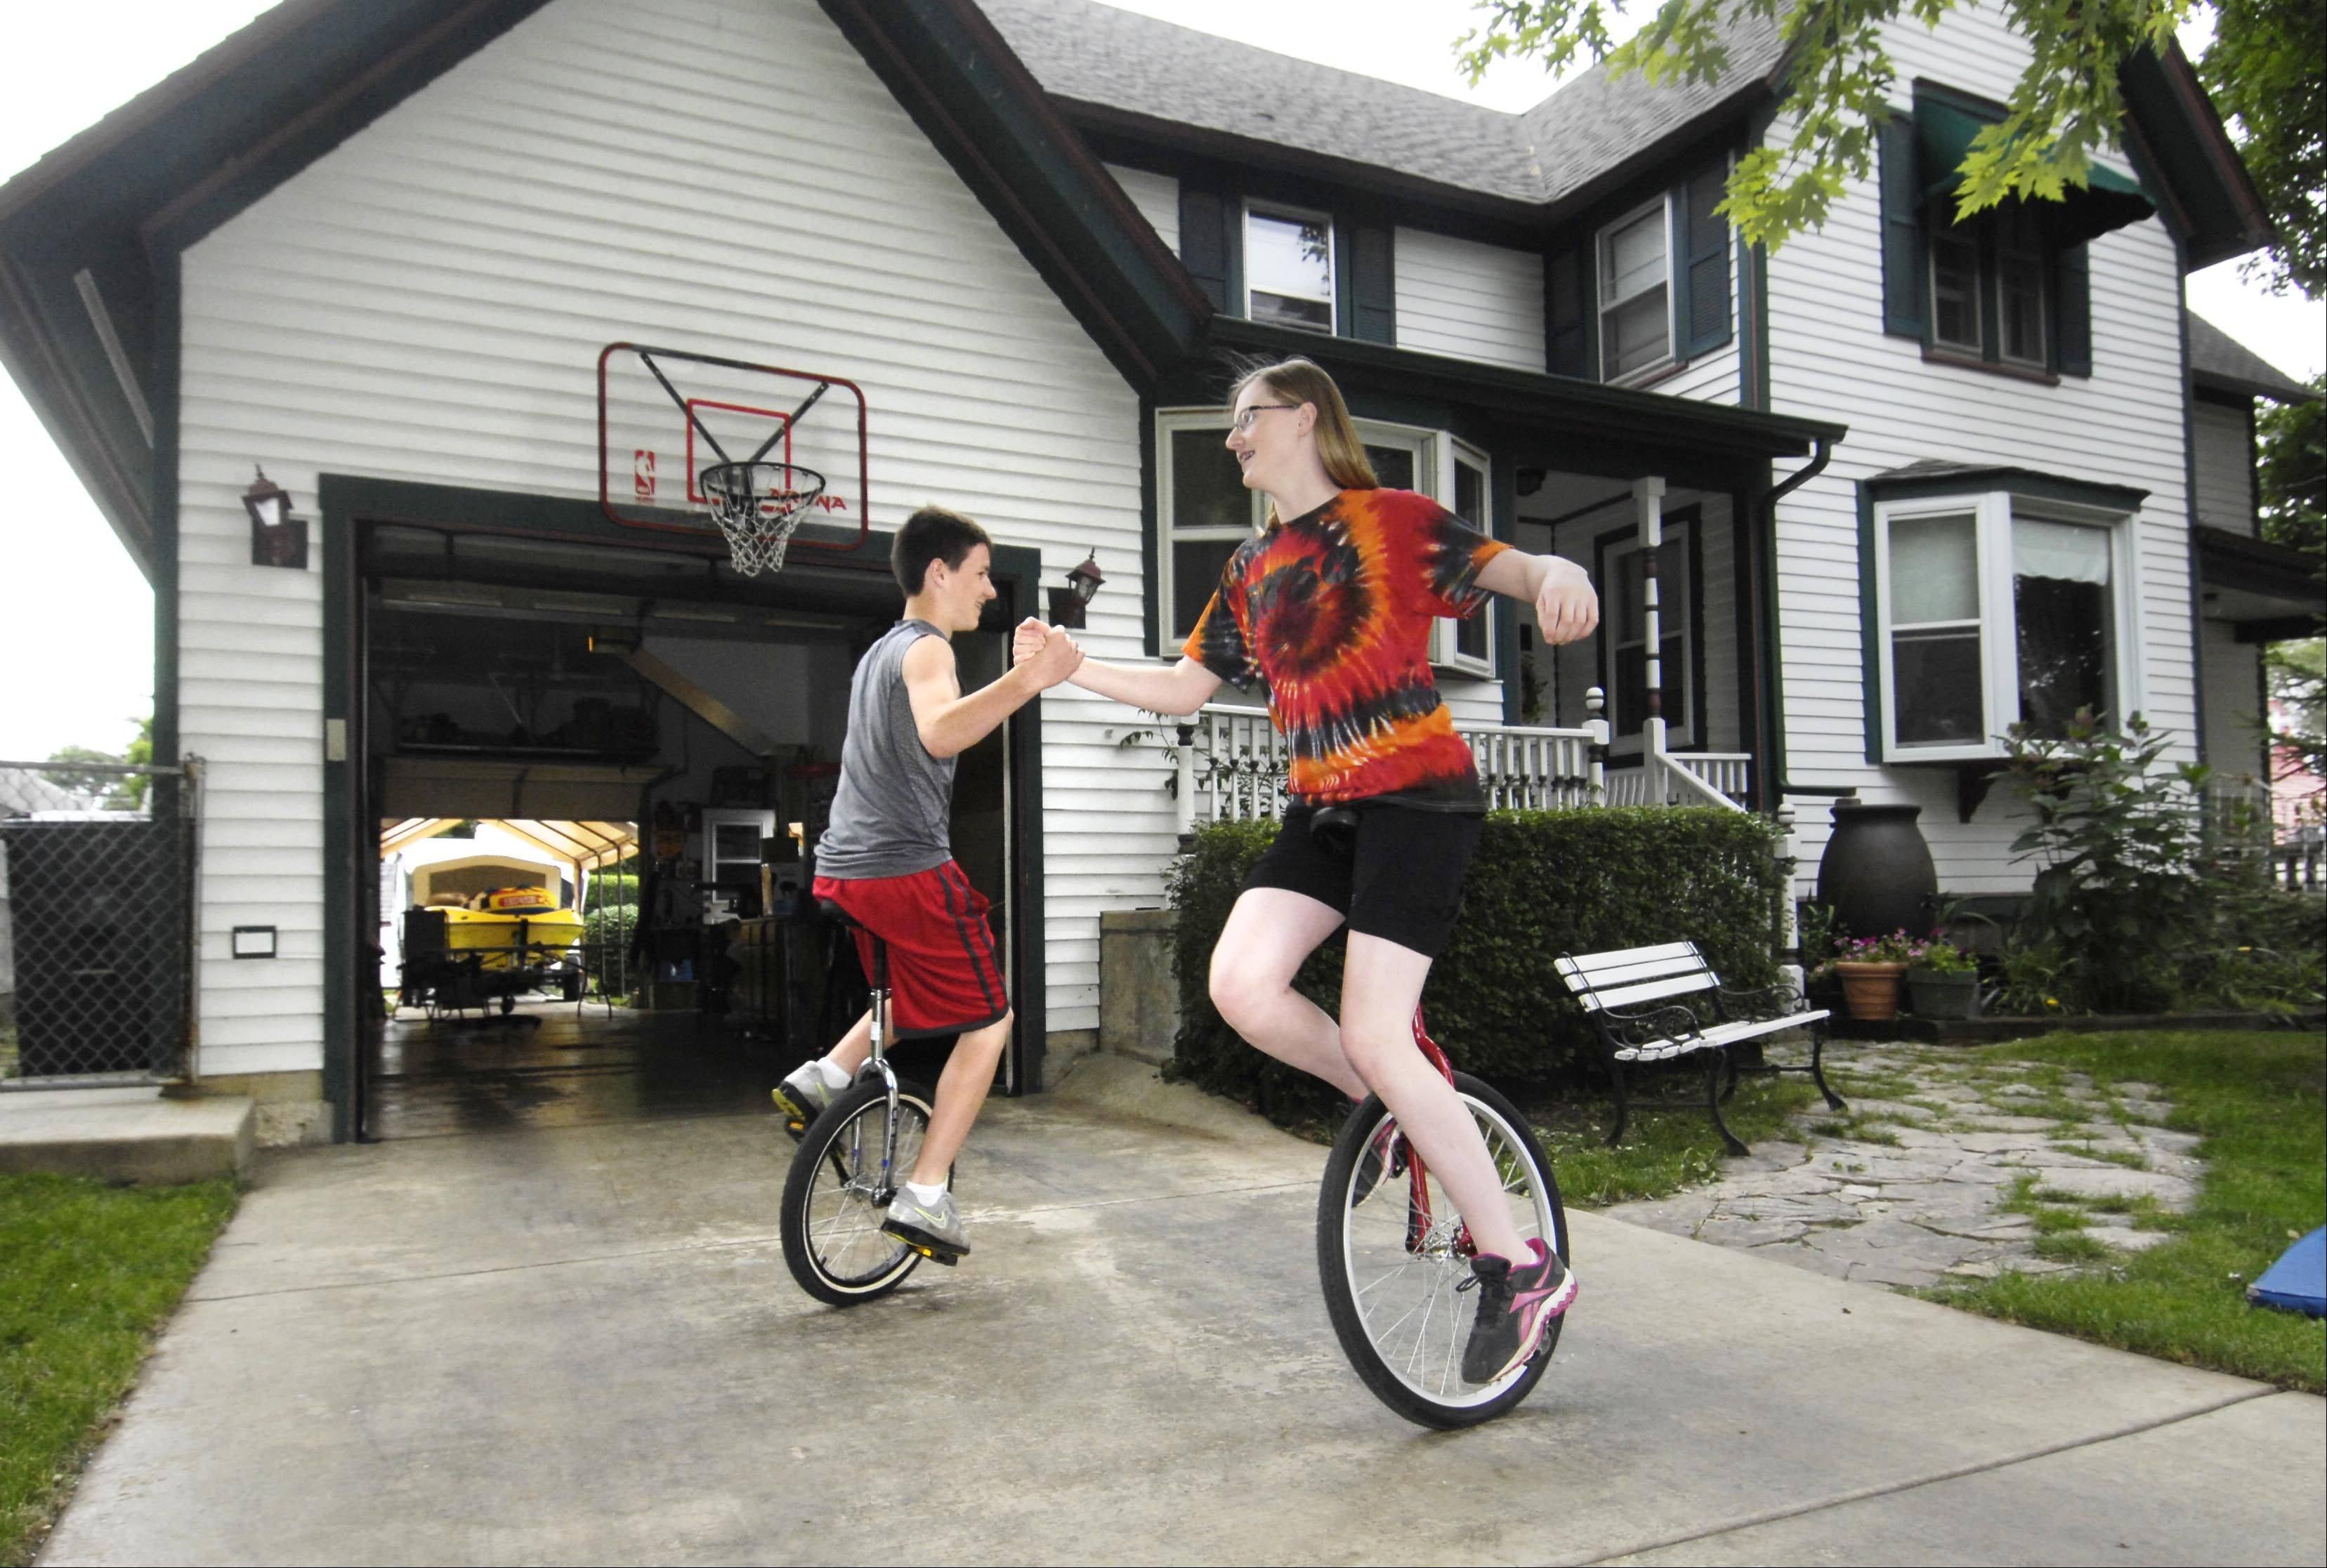 Teenage siblings Katie and Nick Balk use their garage on Prairie Street in South Elgin as their personal circus tent. They like to perform tricks together, but rarely in public.